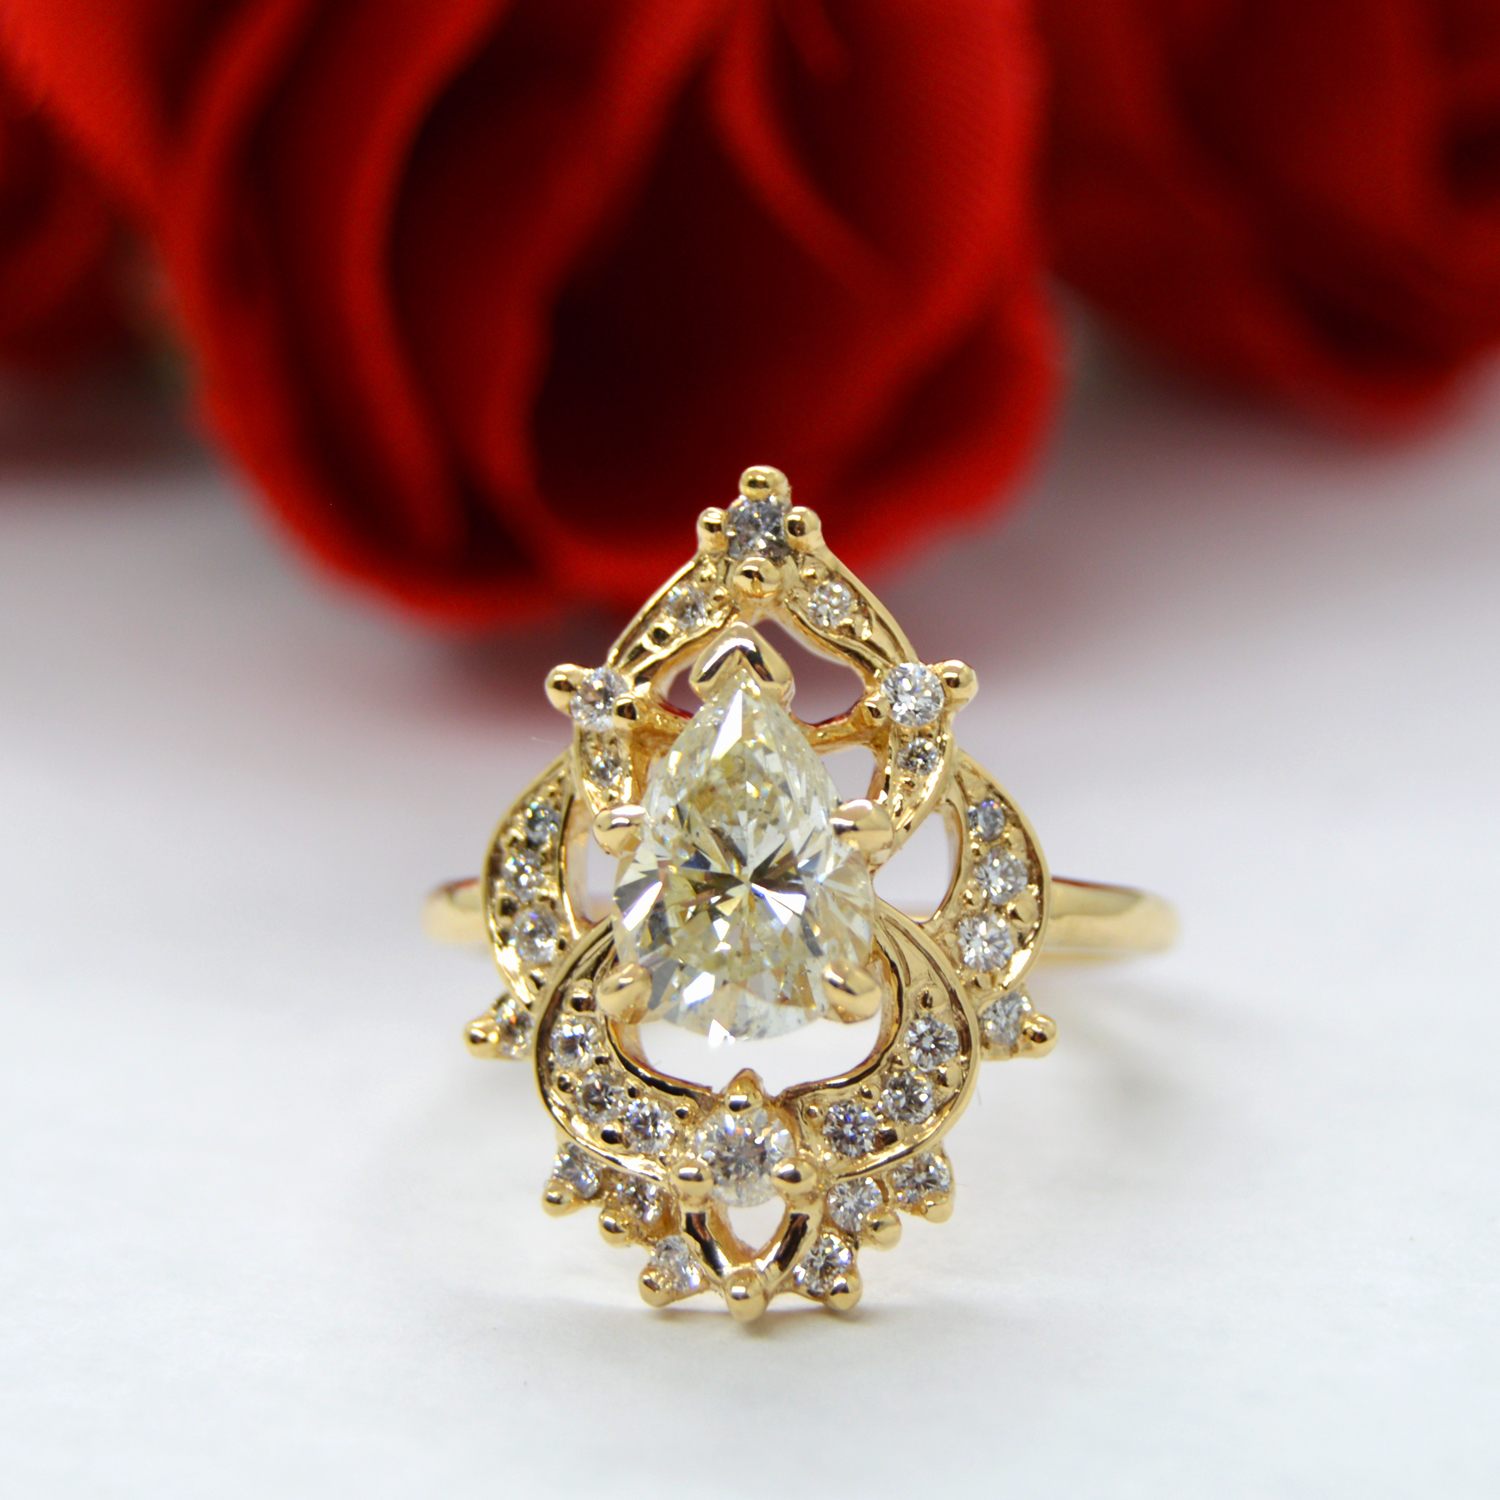 Custom engagement ring in 14K yellow gold with pear cut diamond, pave and prong set accents and open halo.